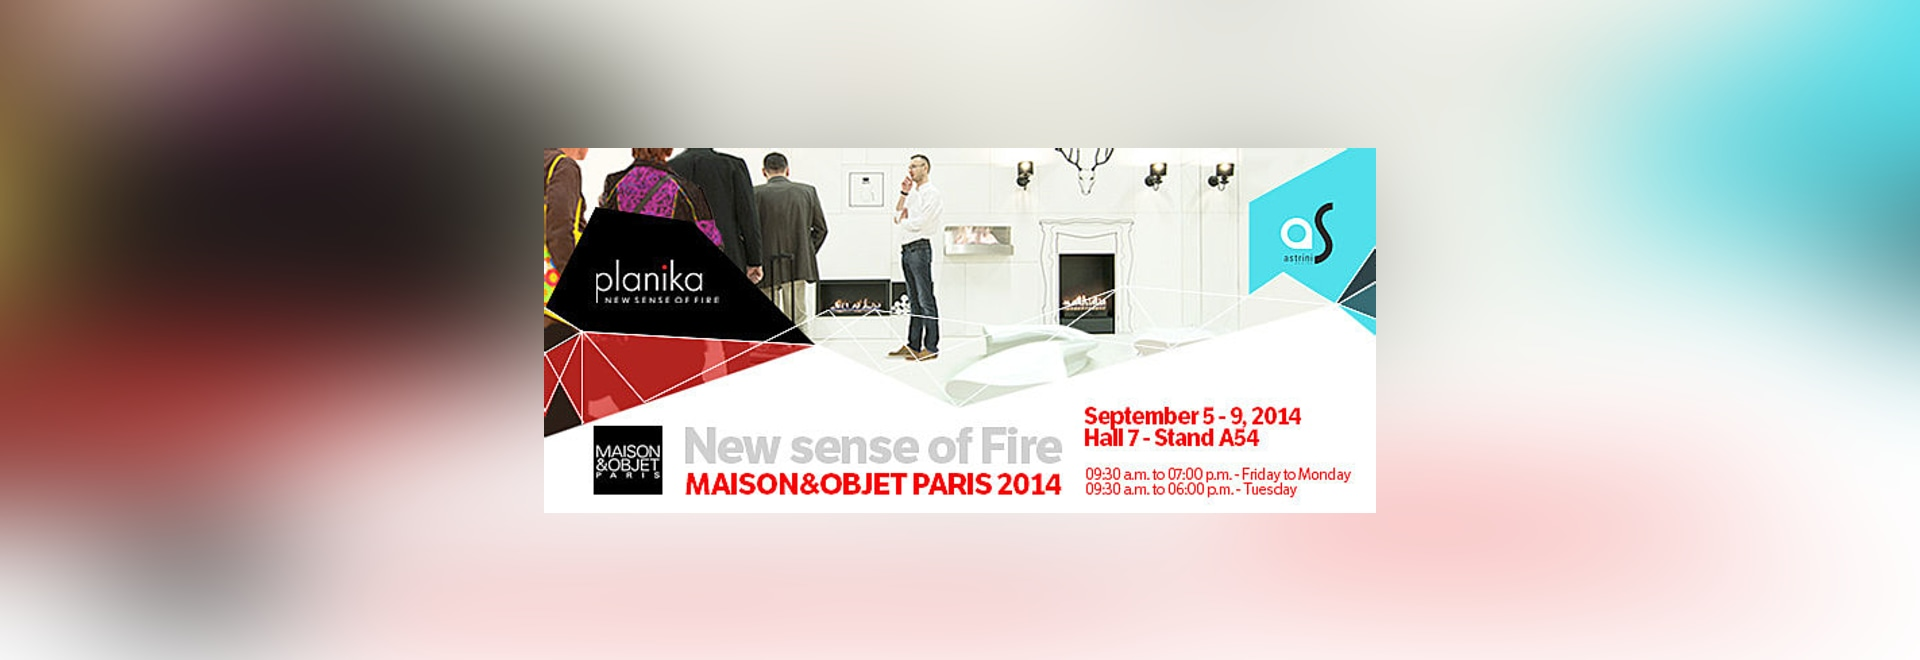 New vision of fire during the Maison & Objet 2014 in Paris